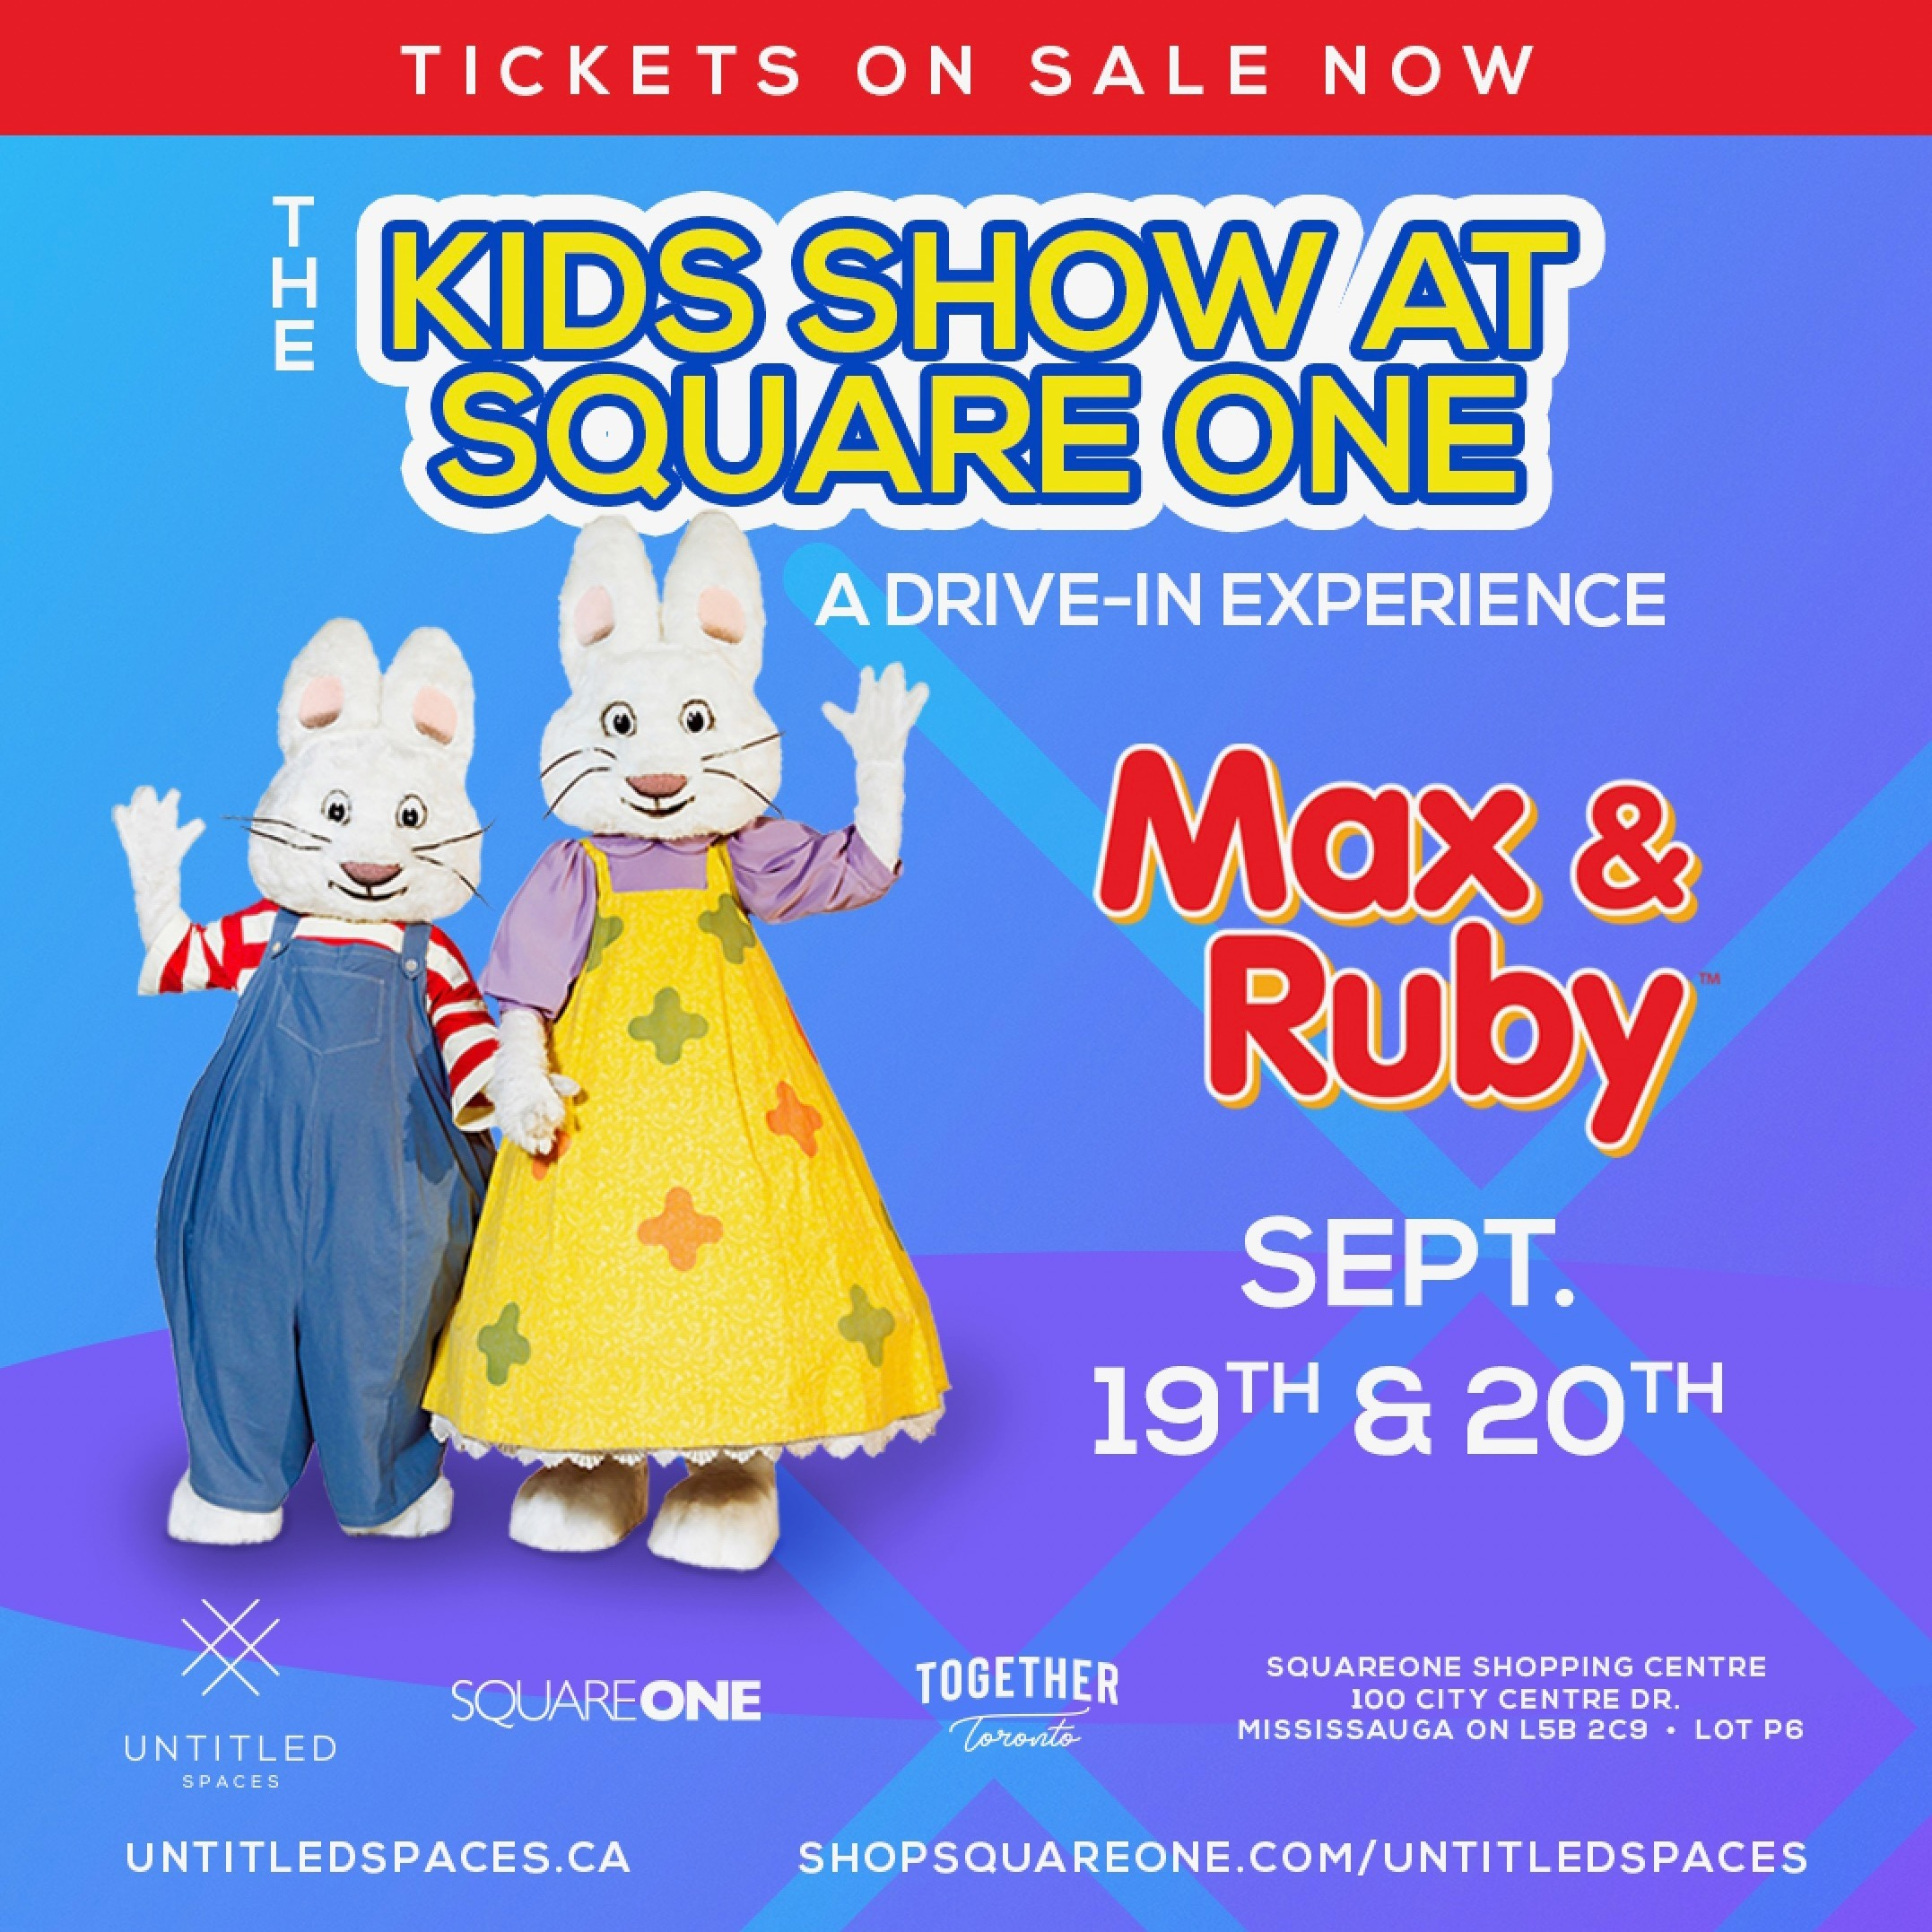 Max & Ruby - September 19 - 1:00 PM